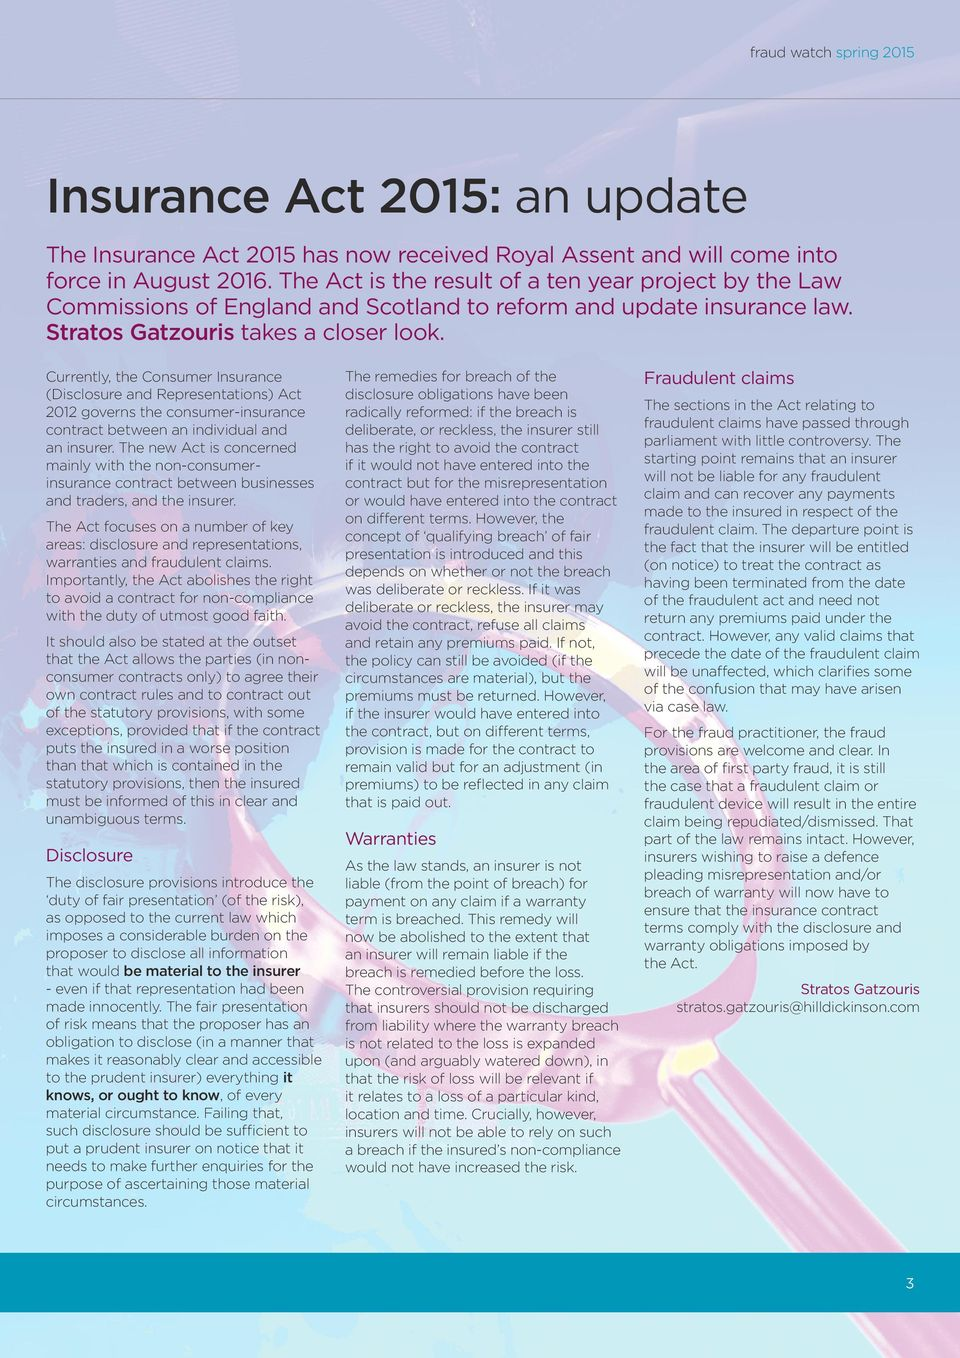 Currently, the Consumer Insurance (Disclosure and Representations) ct 2012 governs the consumer-insurance contract between an individual and an insurer.